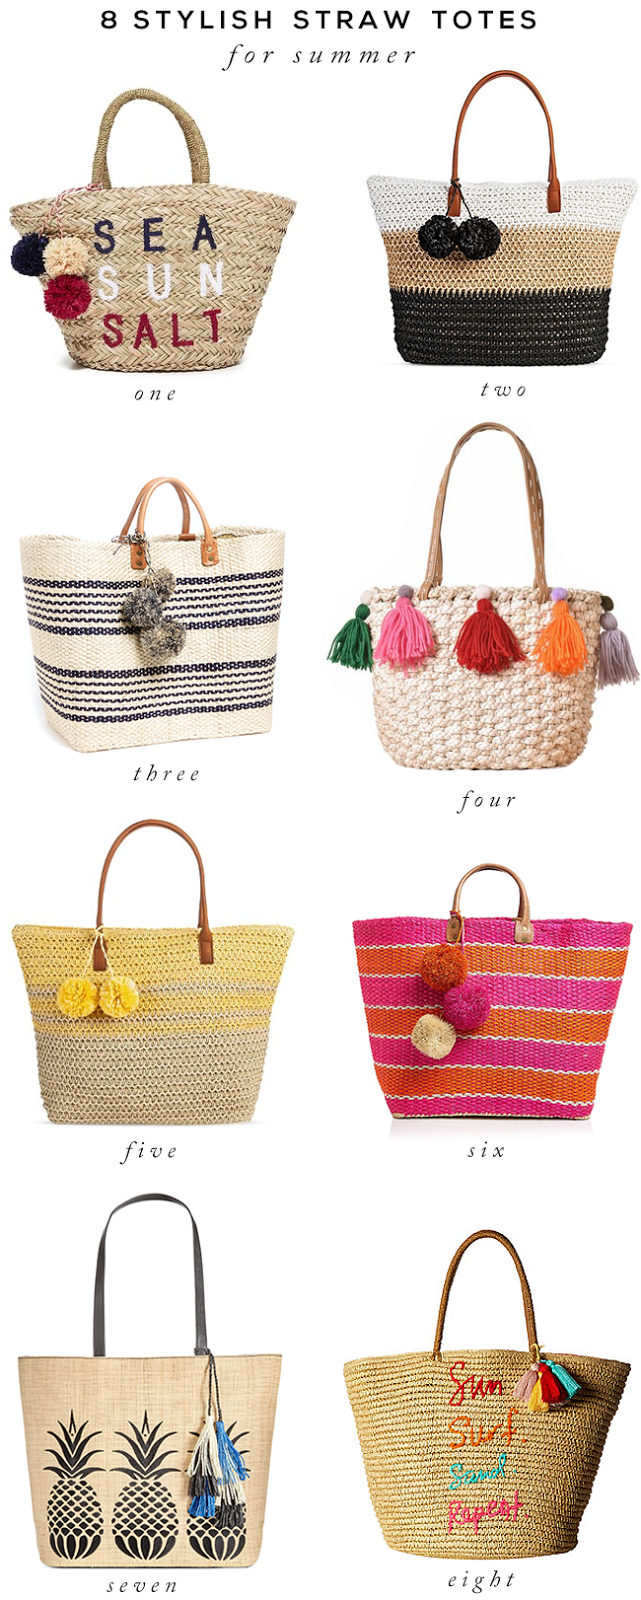 8 Stylish Straw Totes For Summer